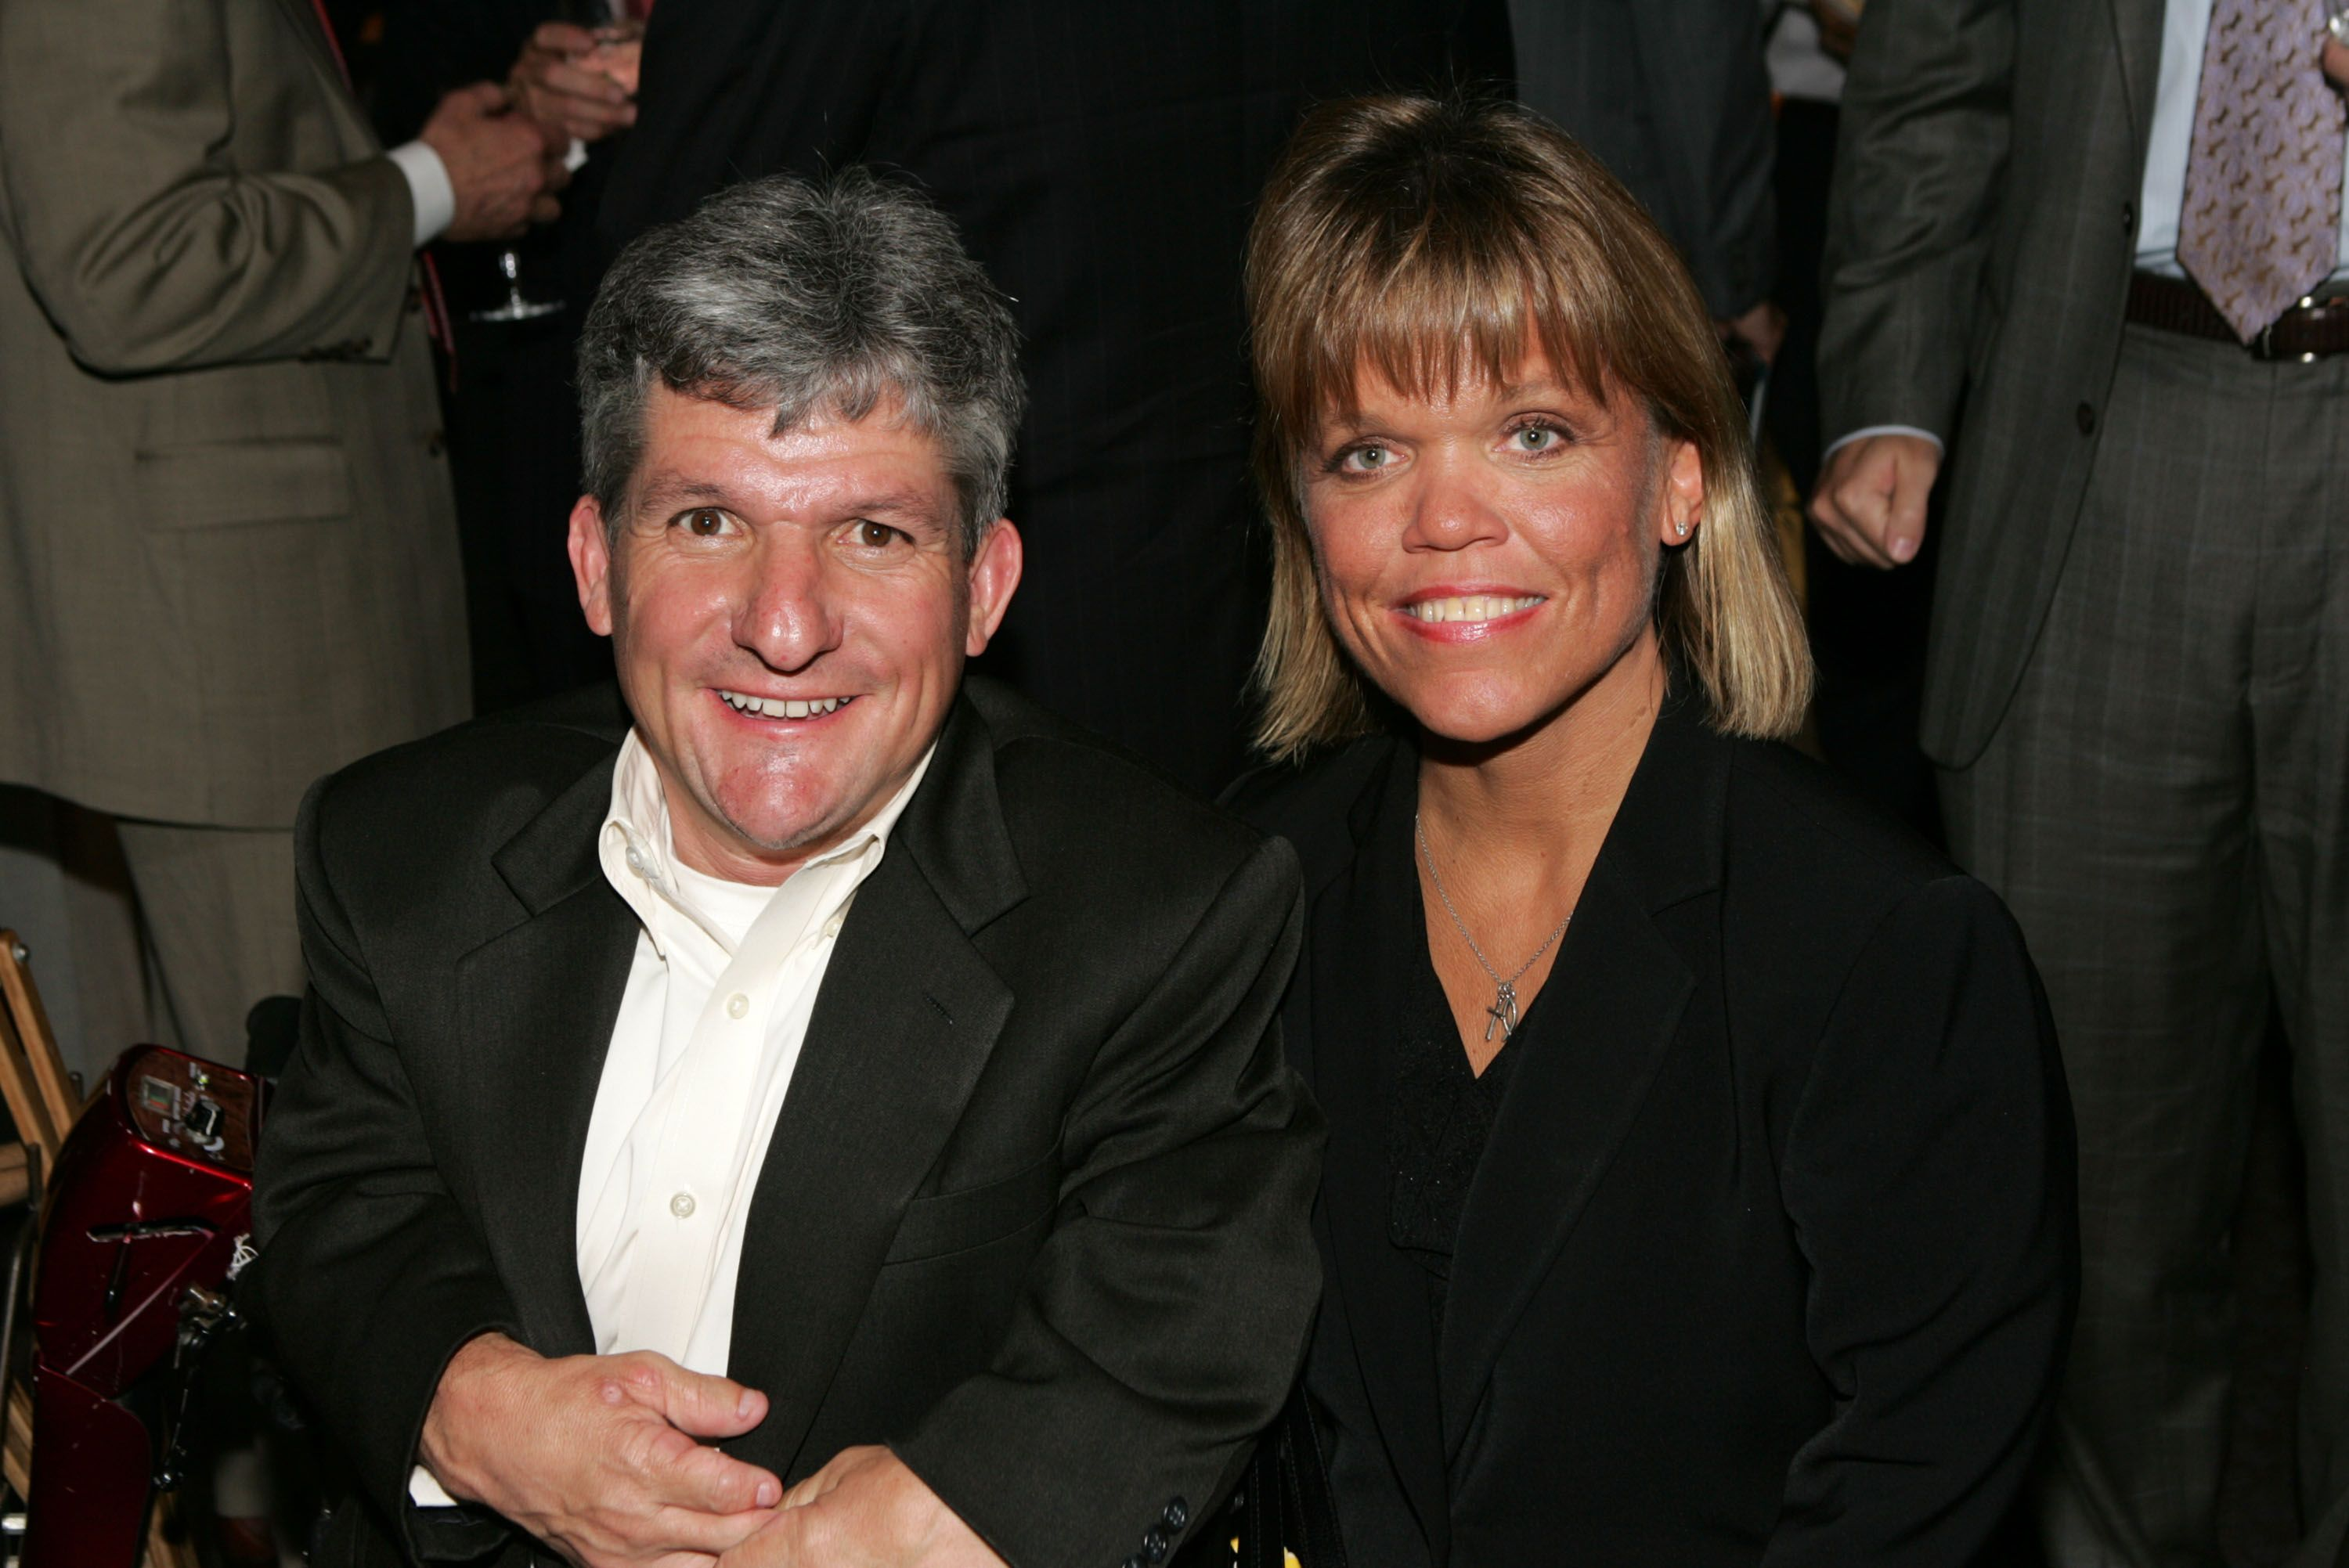 Matt and Amy Roloff during the Discovery Upfront Presentation NY - Talent Images at the Frederick P. Rose Hall on April 23, 2008 in New York City. | Source: Getty Images